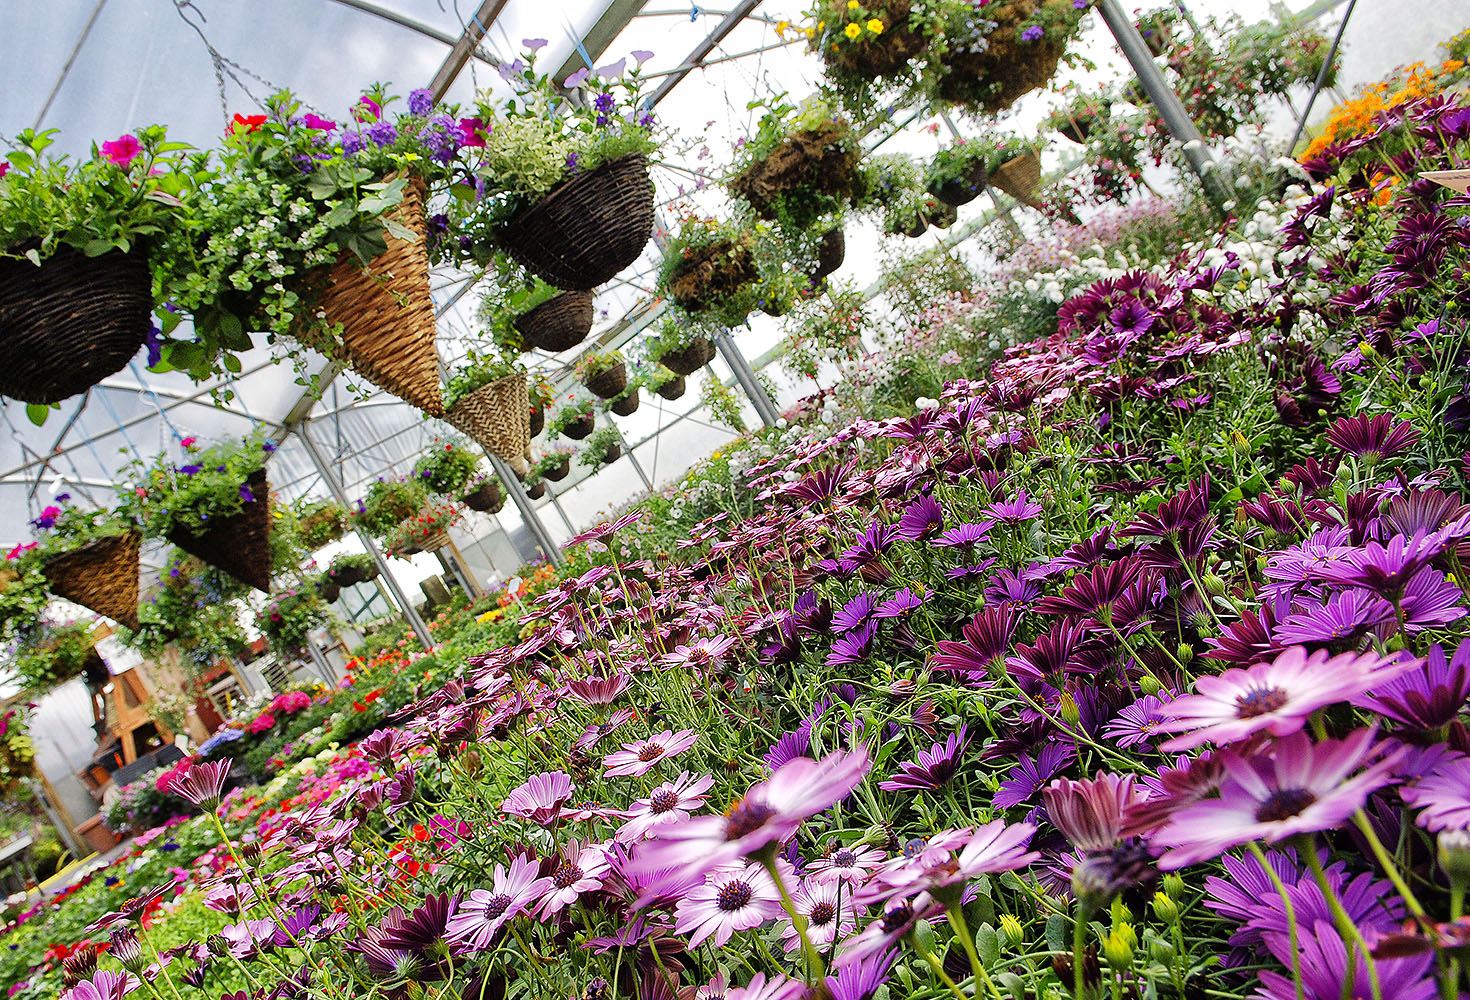 website photography, plant nursery with hanging baskets and purple flowers